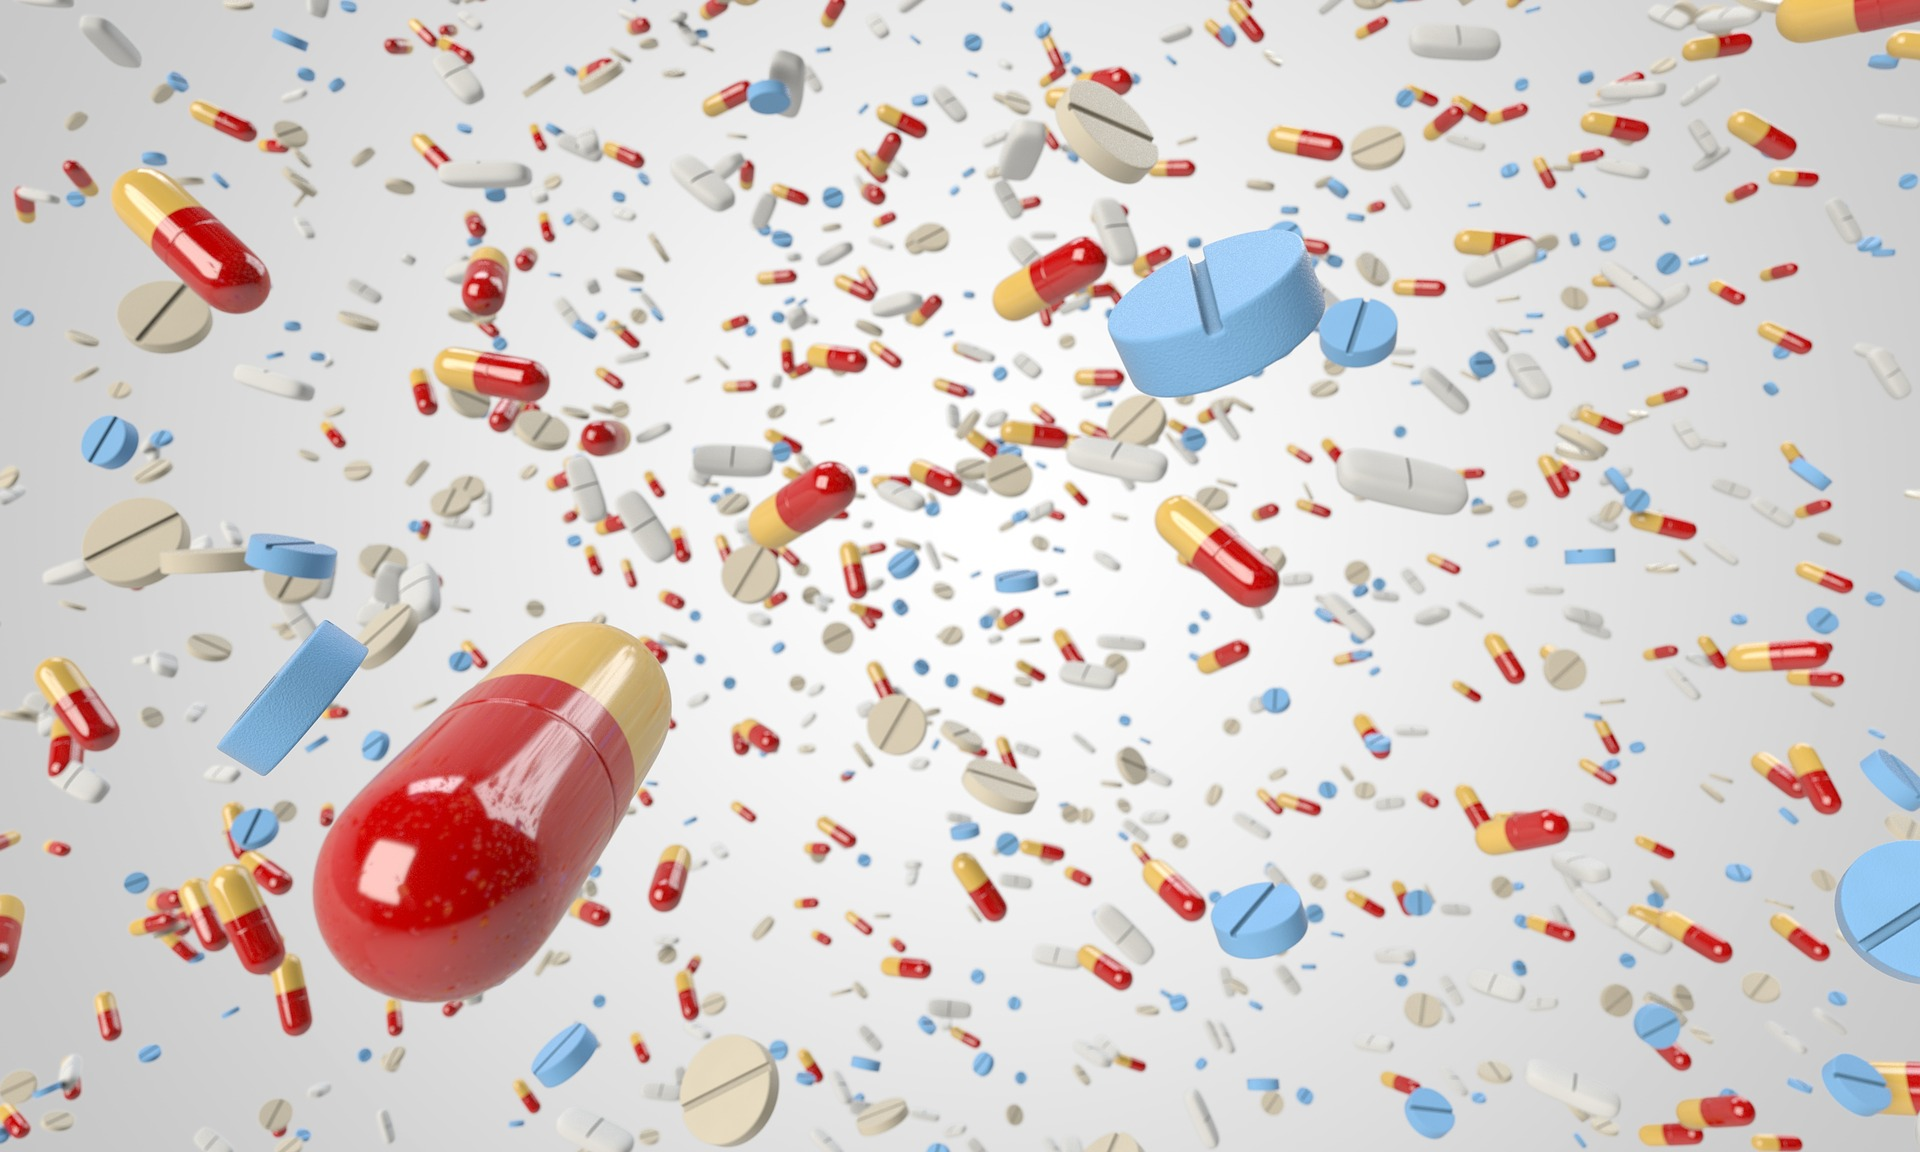 pills - Medical Treatments That Can Have Dire Consequences for Seniors